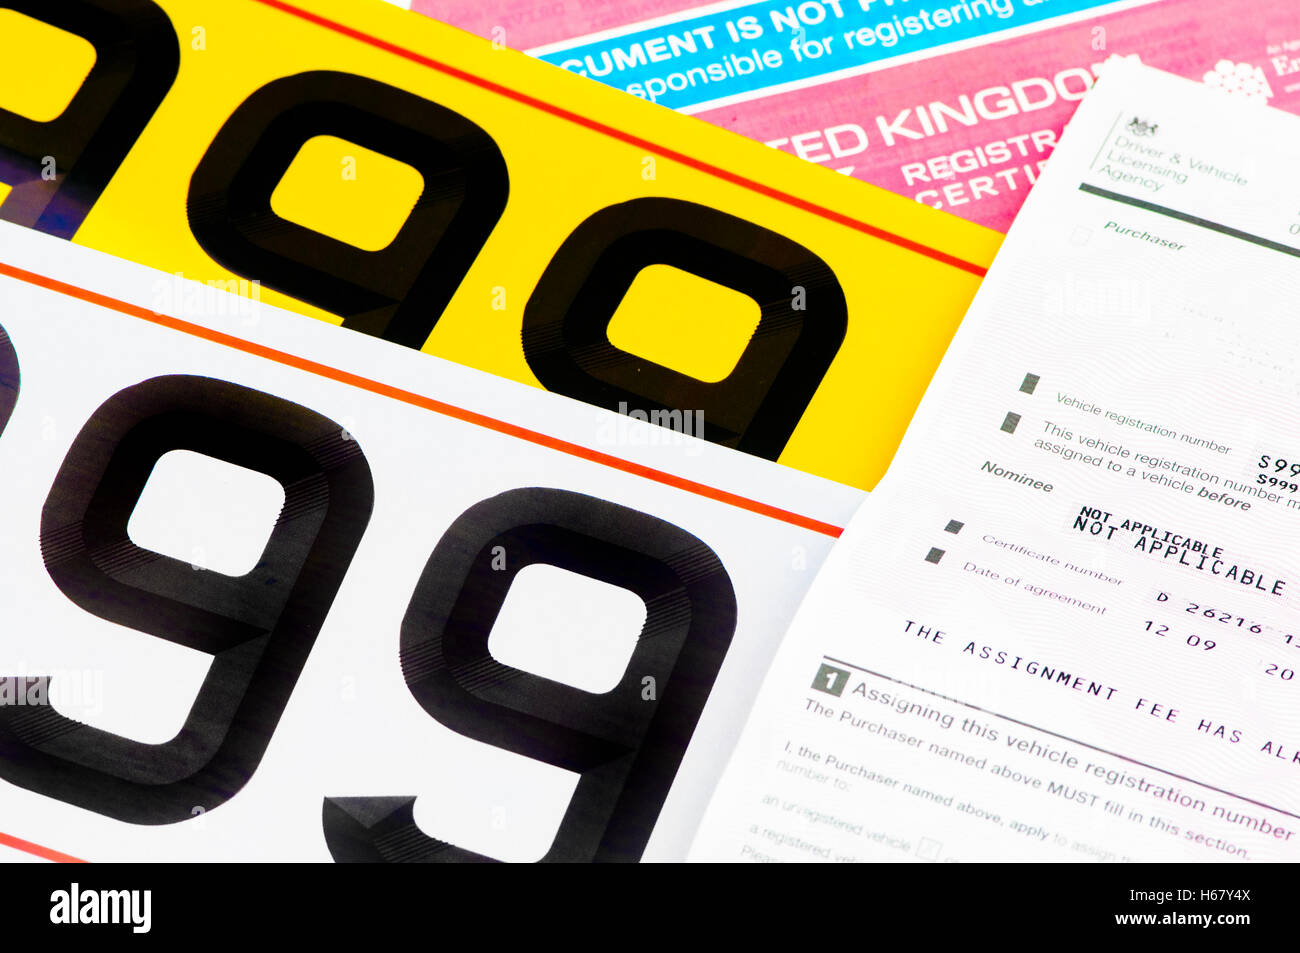 Certificate of Entitlement for personalised number plates from DVLA with V5C registration certificate. - Stock Image